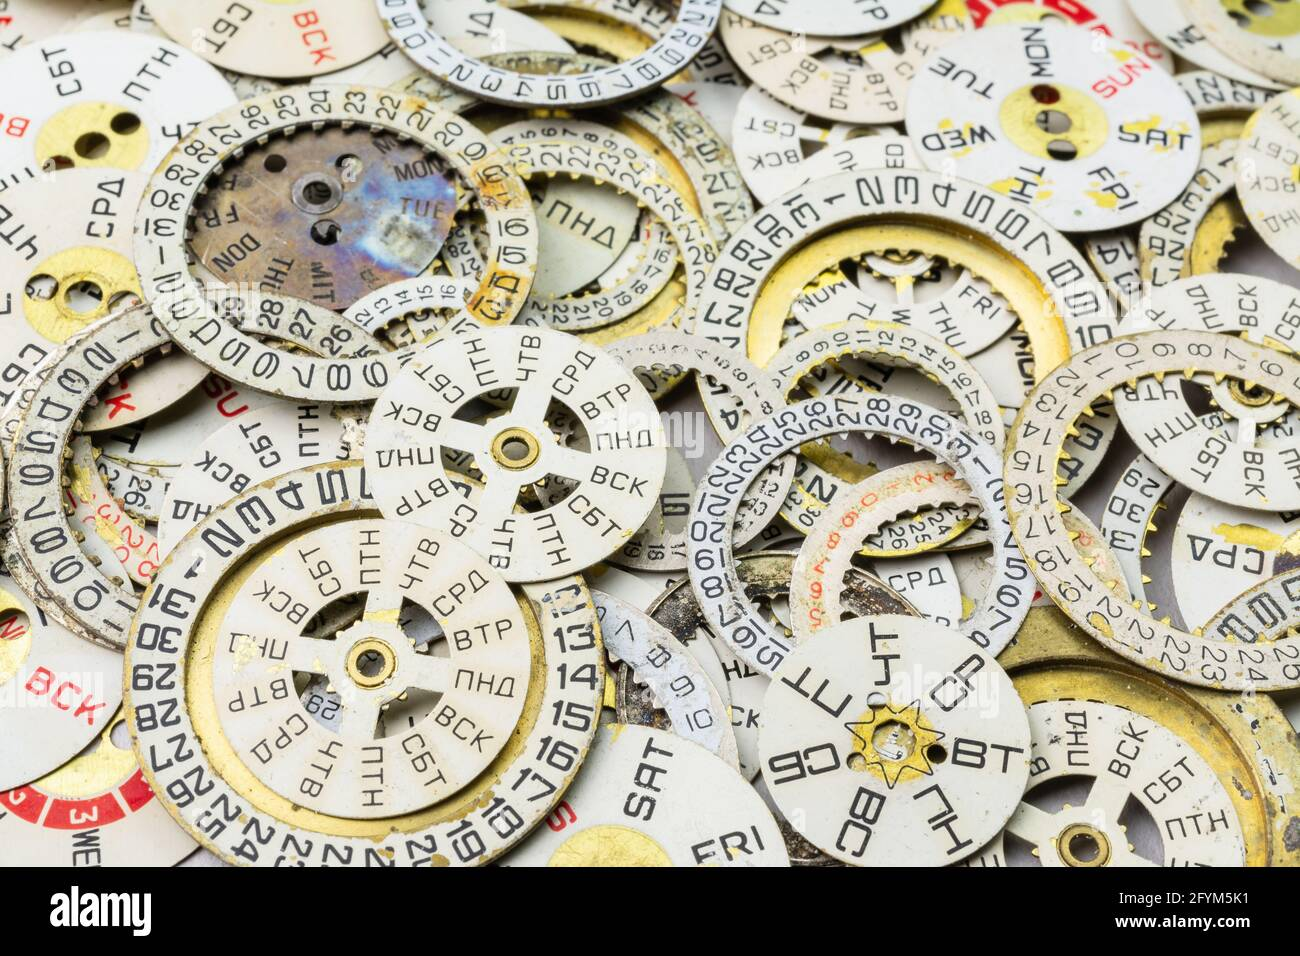 Old vintage wrist watch dials in English and Russian Stock Photo